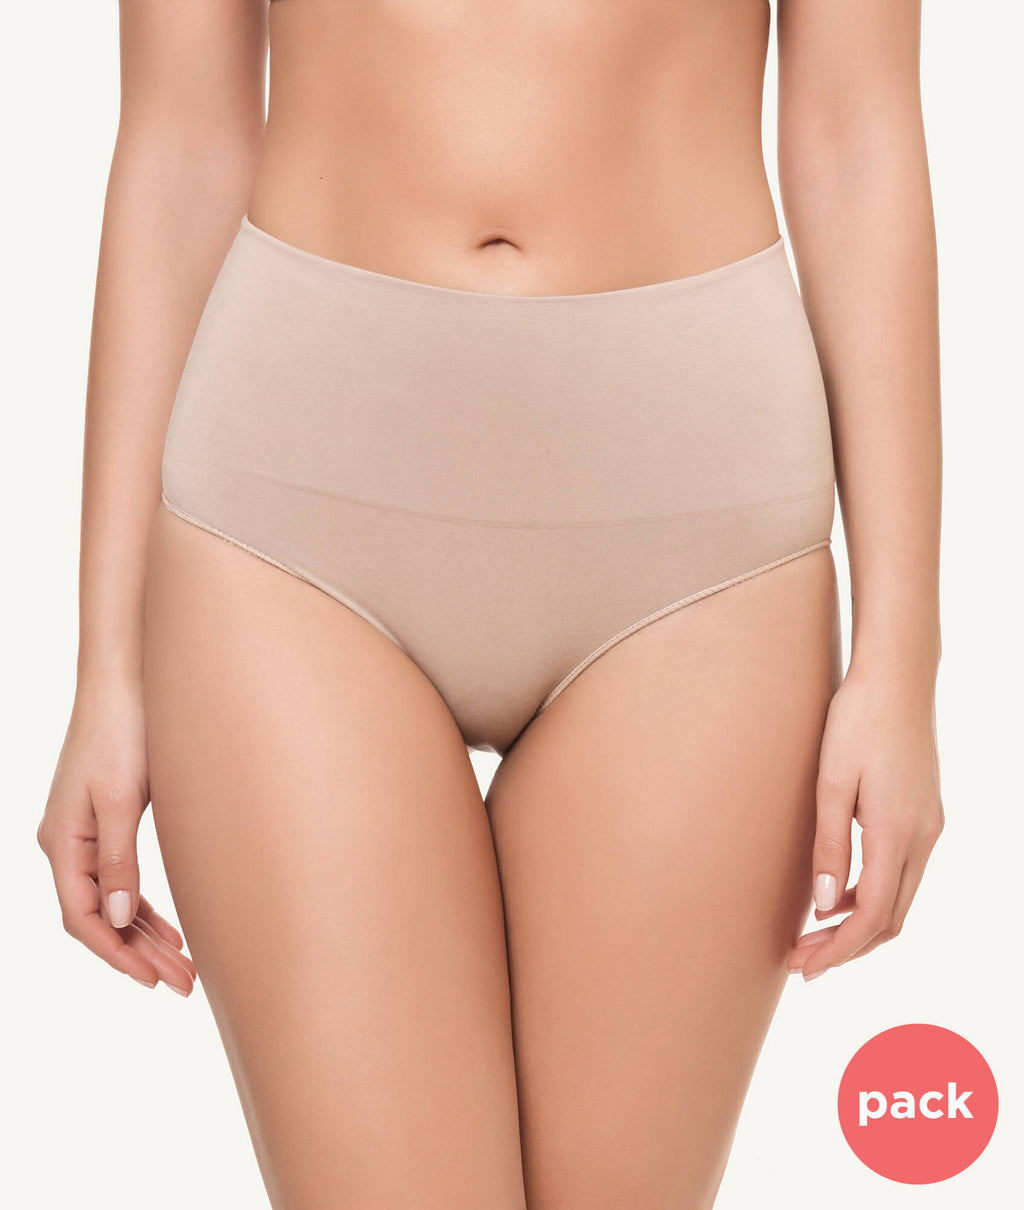 Braga faja baja reafirmante doble capa beige PACK - CHANNO Woman